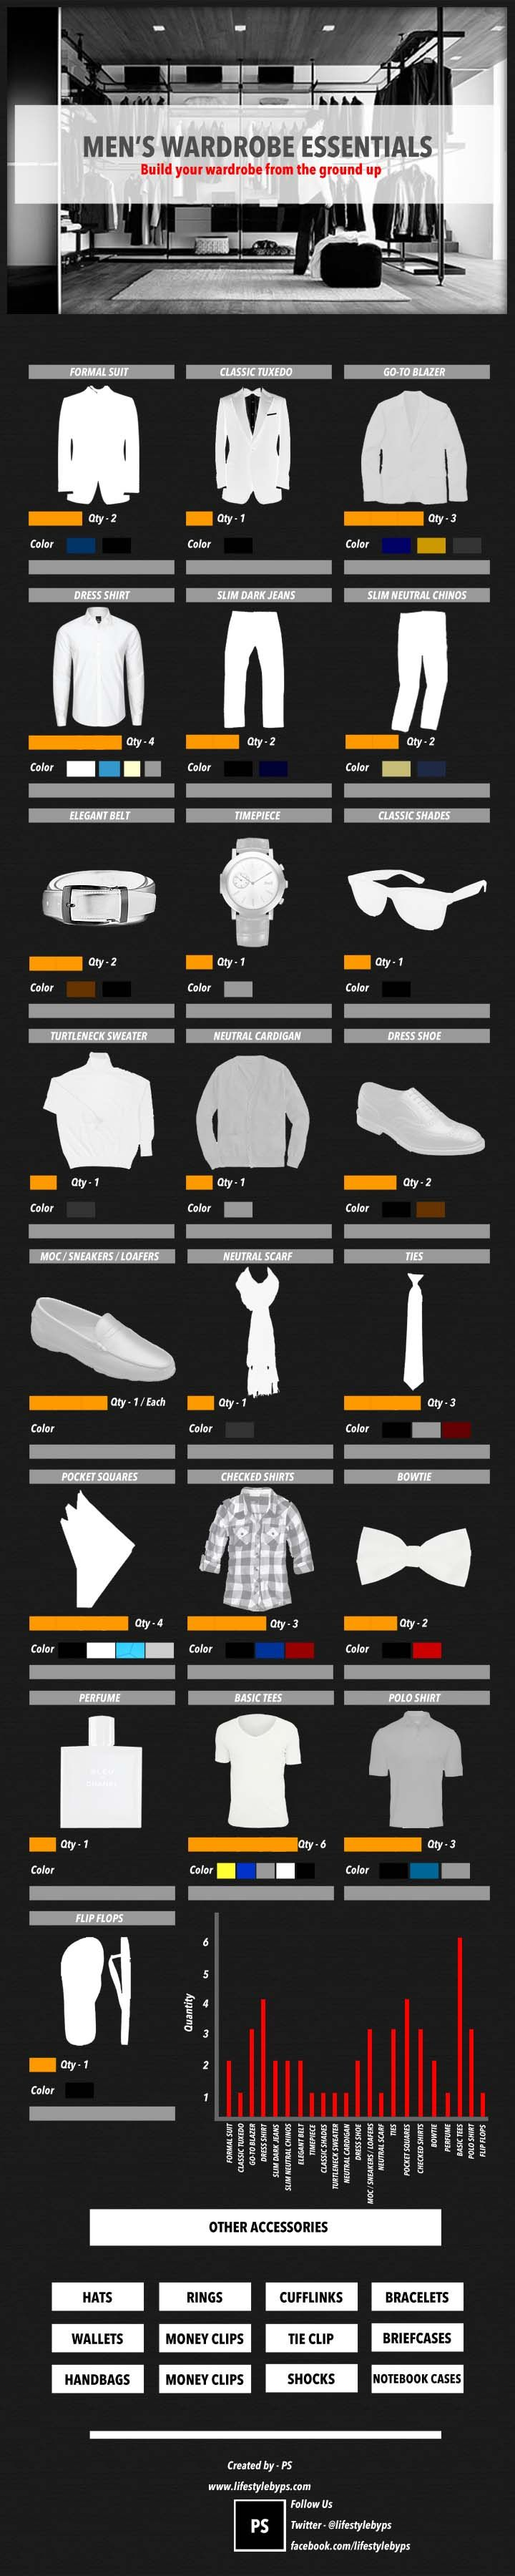 Wardrobe Essentials For Men